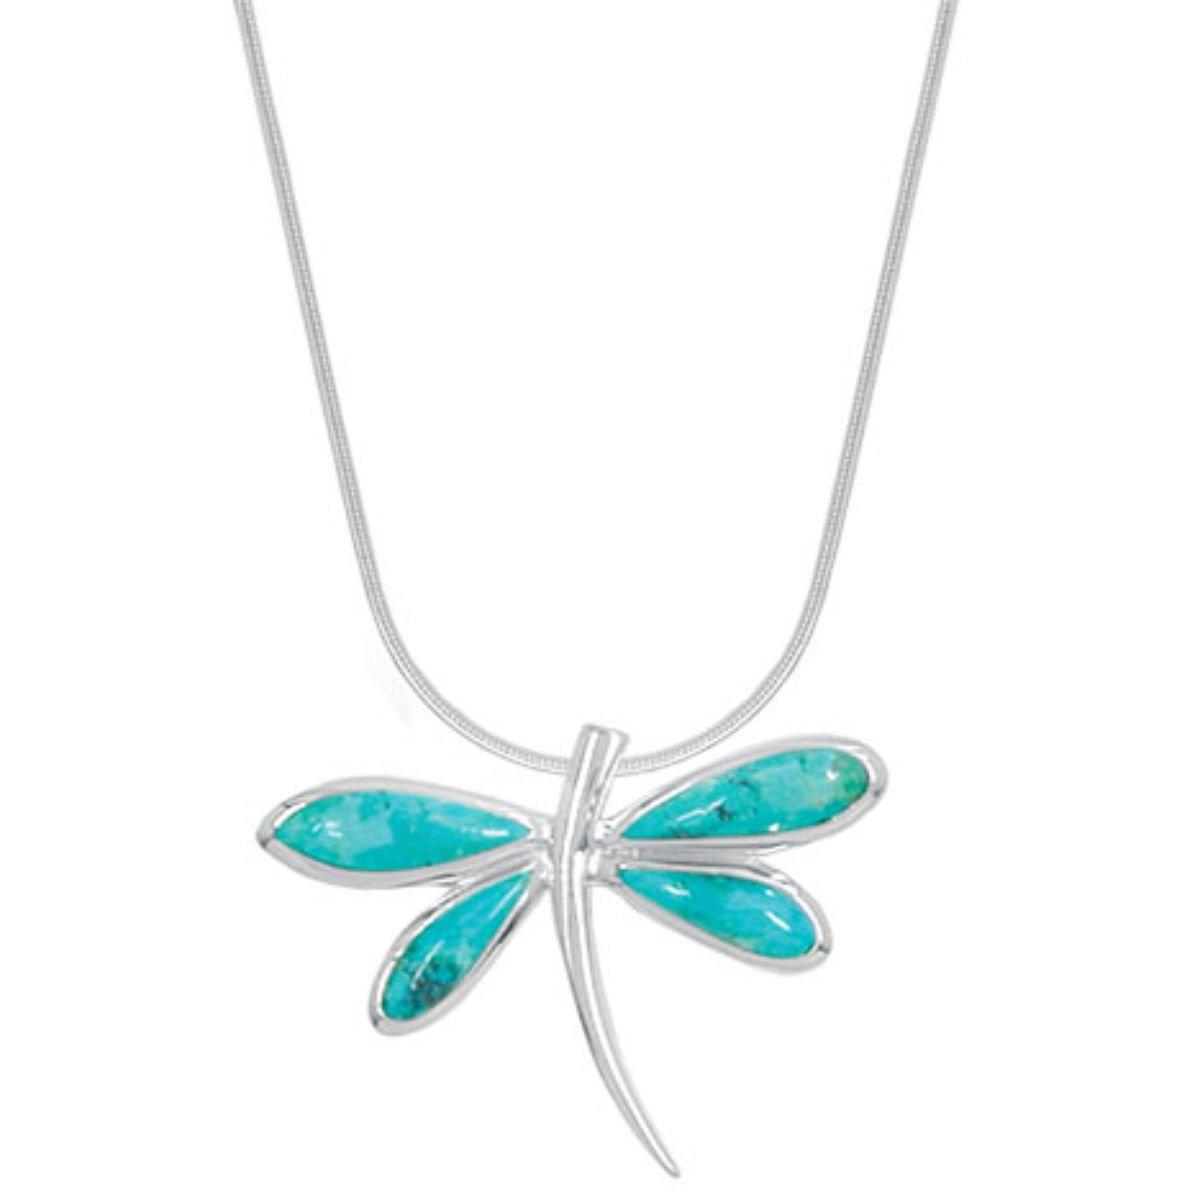 BO NB864TQ TURQUOISE DRAGONFLY NECKLACE